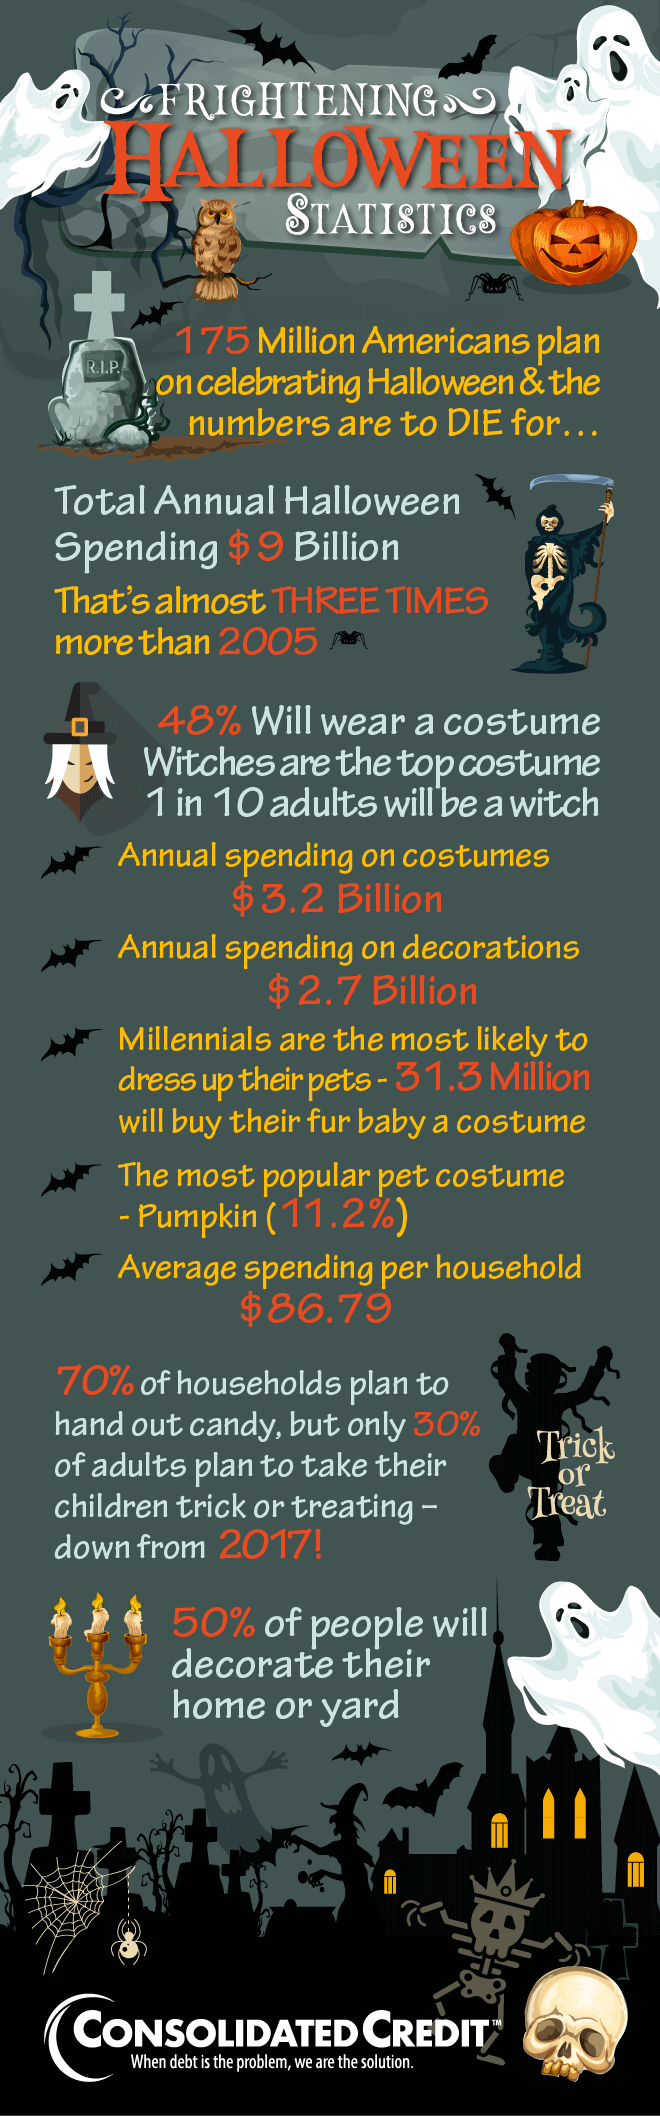 Consolidated Credit's Halloween Statistics infographic for 2018